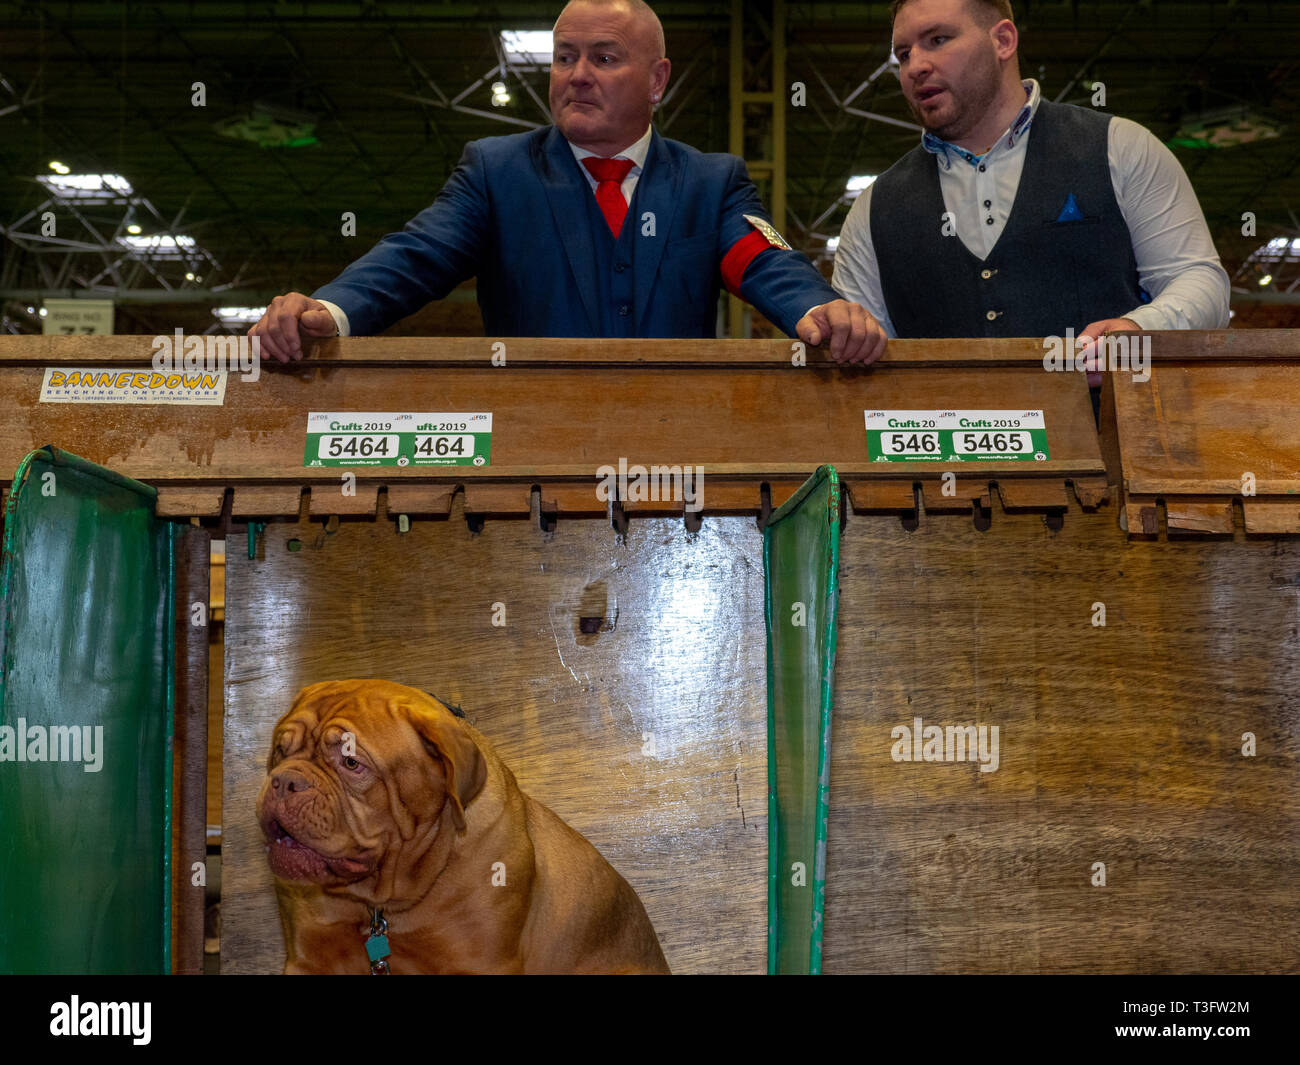 BIRMINGHAM, ENGLAND - MARCH 08: Men look out at National Exhibition Centre on March 8, 2019 in Birmingham, England. (Photo by Peter Dench/Getty Images - Stock Image